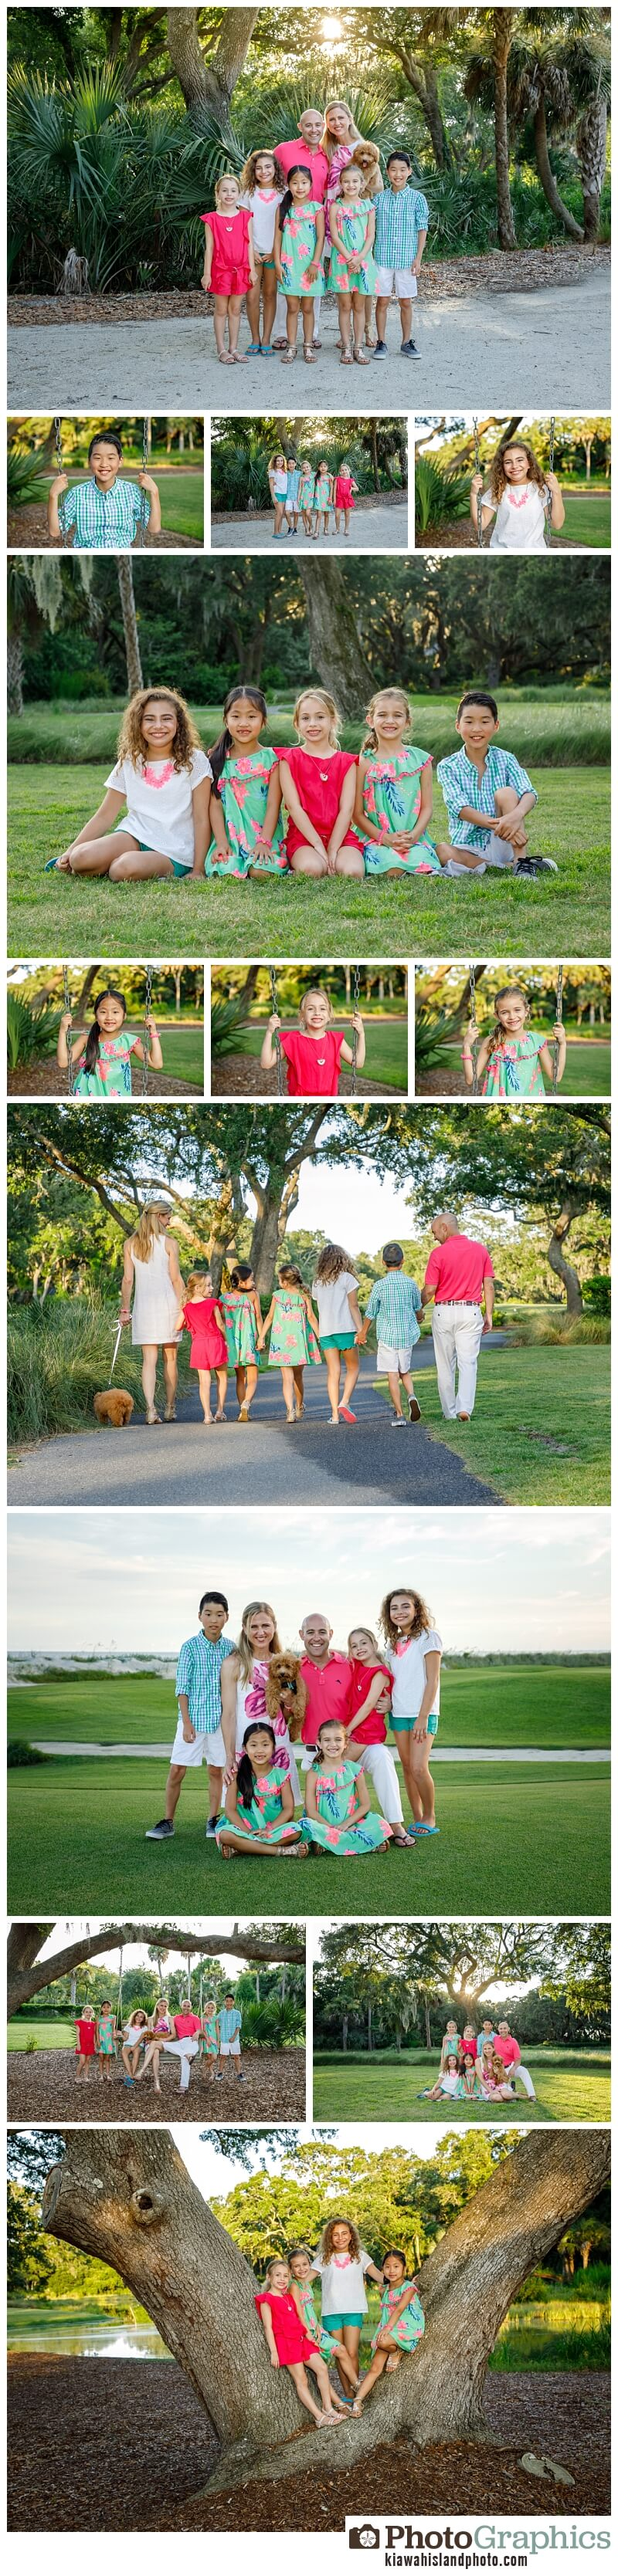 family photos in the park on kiawah island family of 6